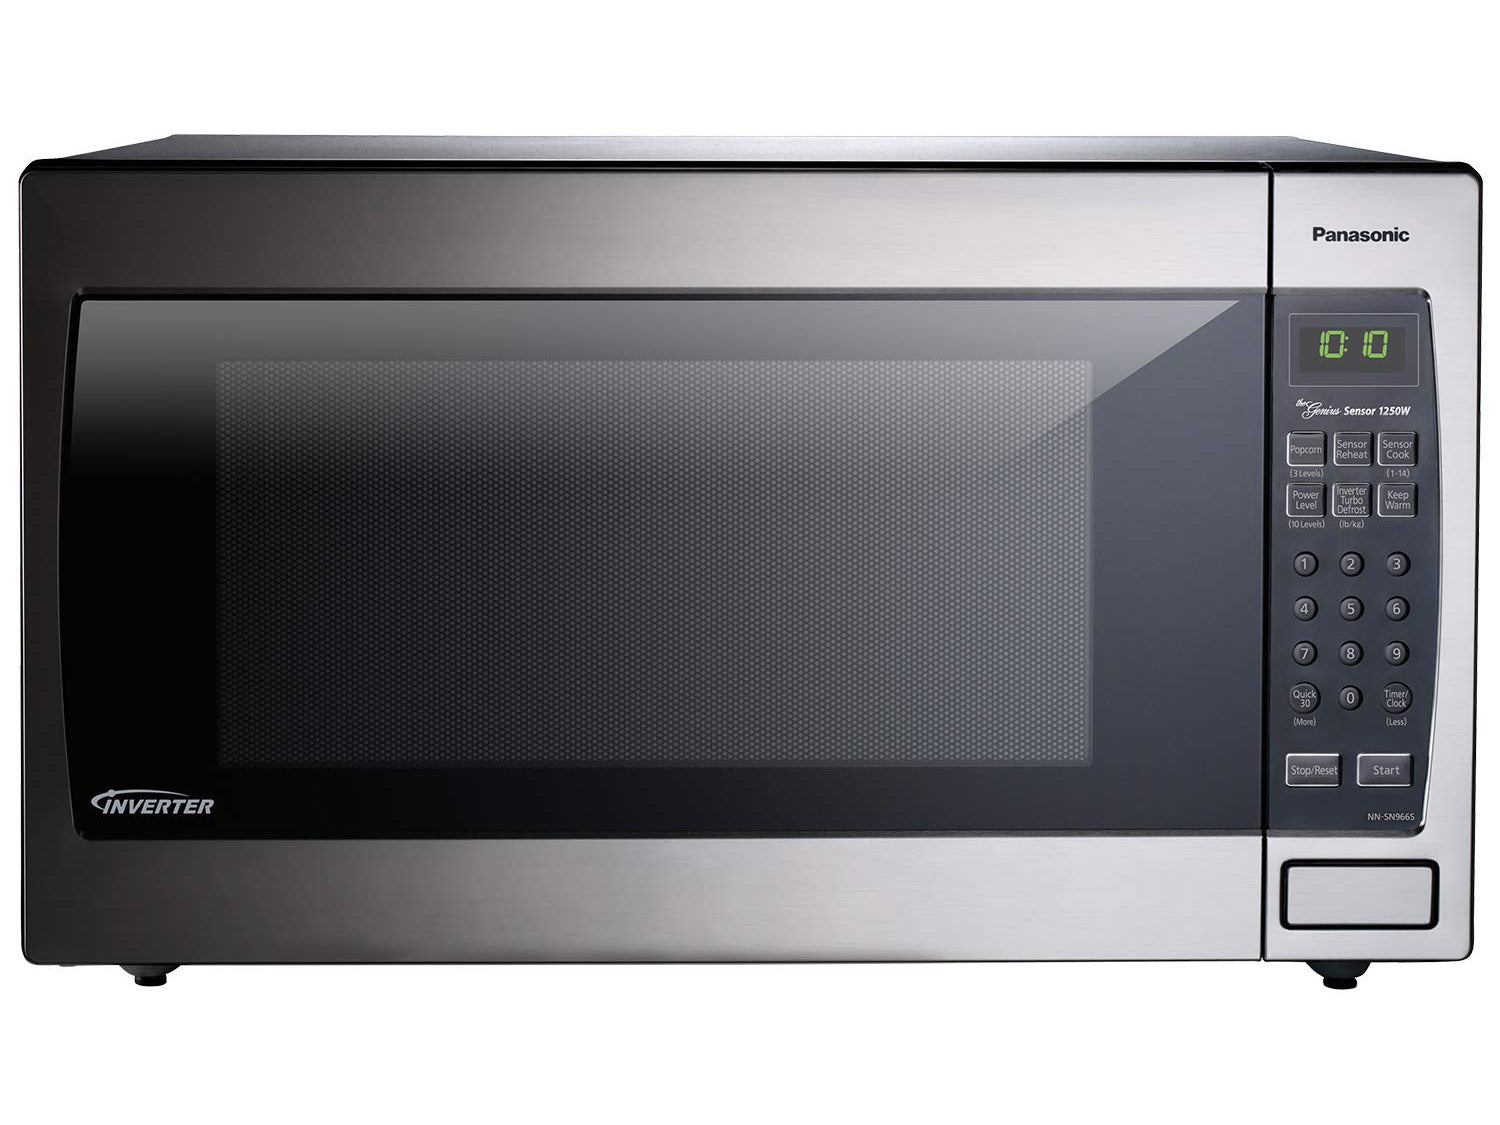 Panasonic Microwave Oven NN-SN966S Stainless Steel Countertop/Built-In with Inverter Technology and Genius Sensor